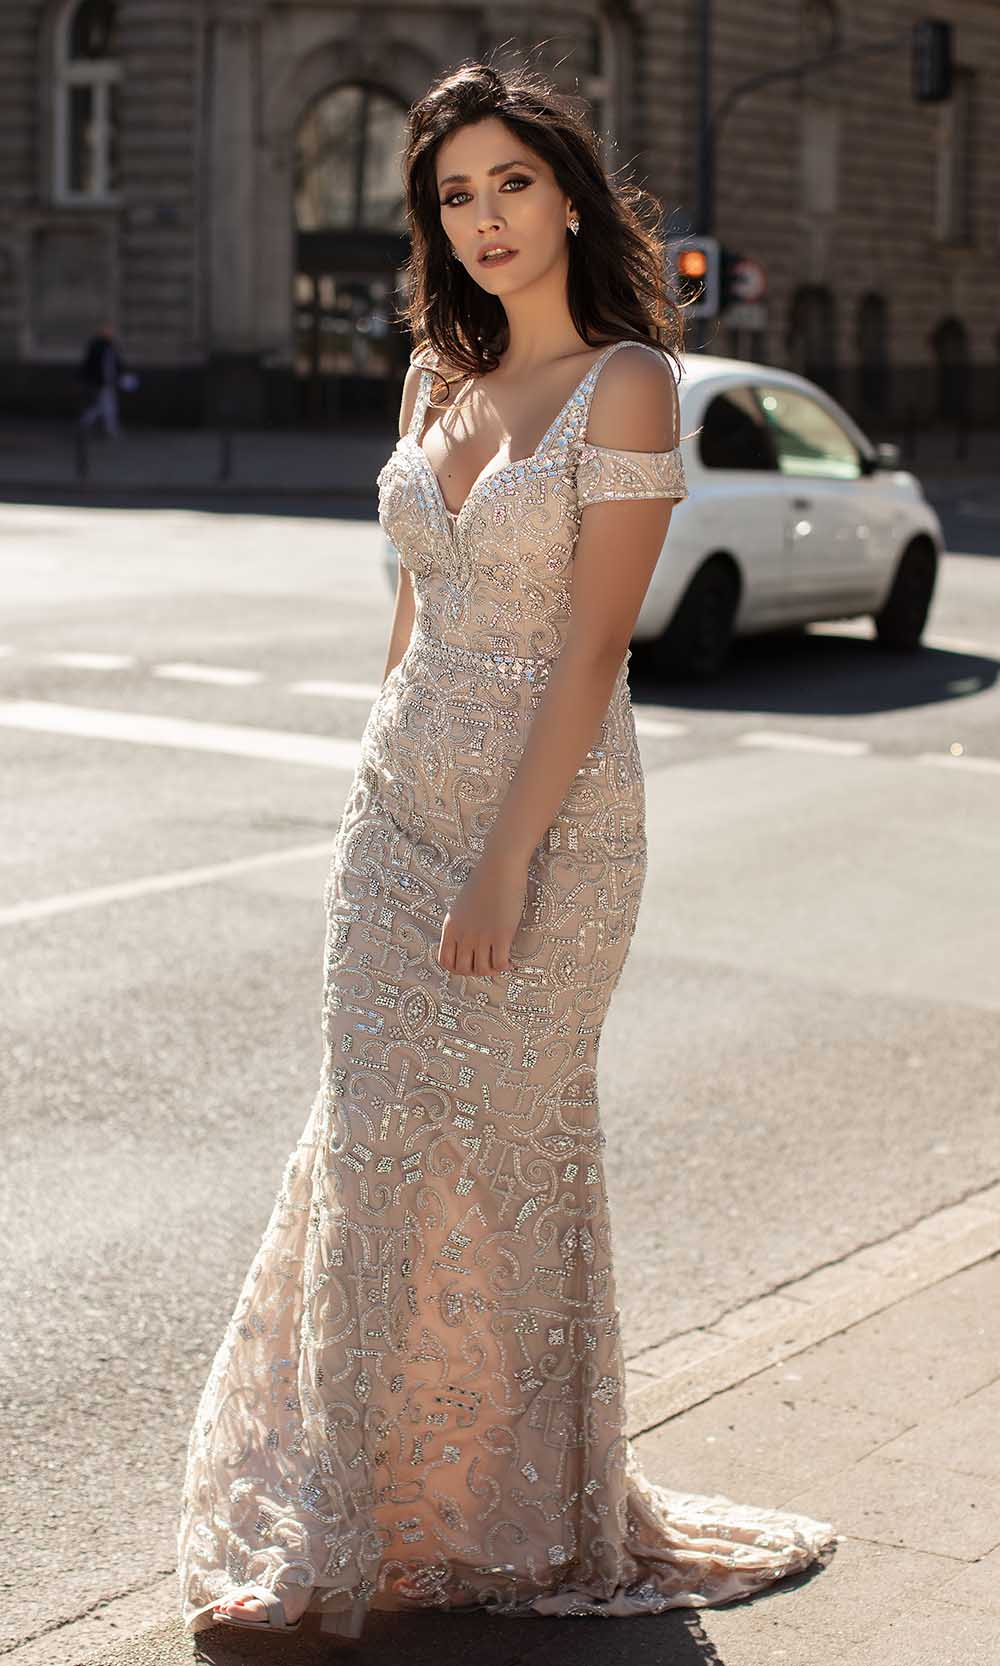 Chic and Holland - HF1558 Beaded Cold Shoulder Long Dress from Chic and Holland